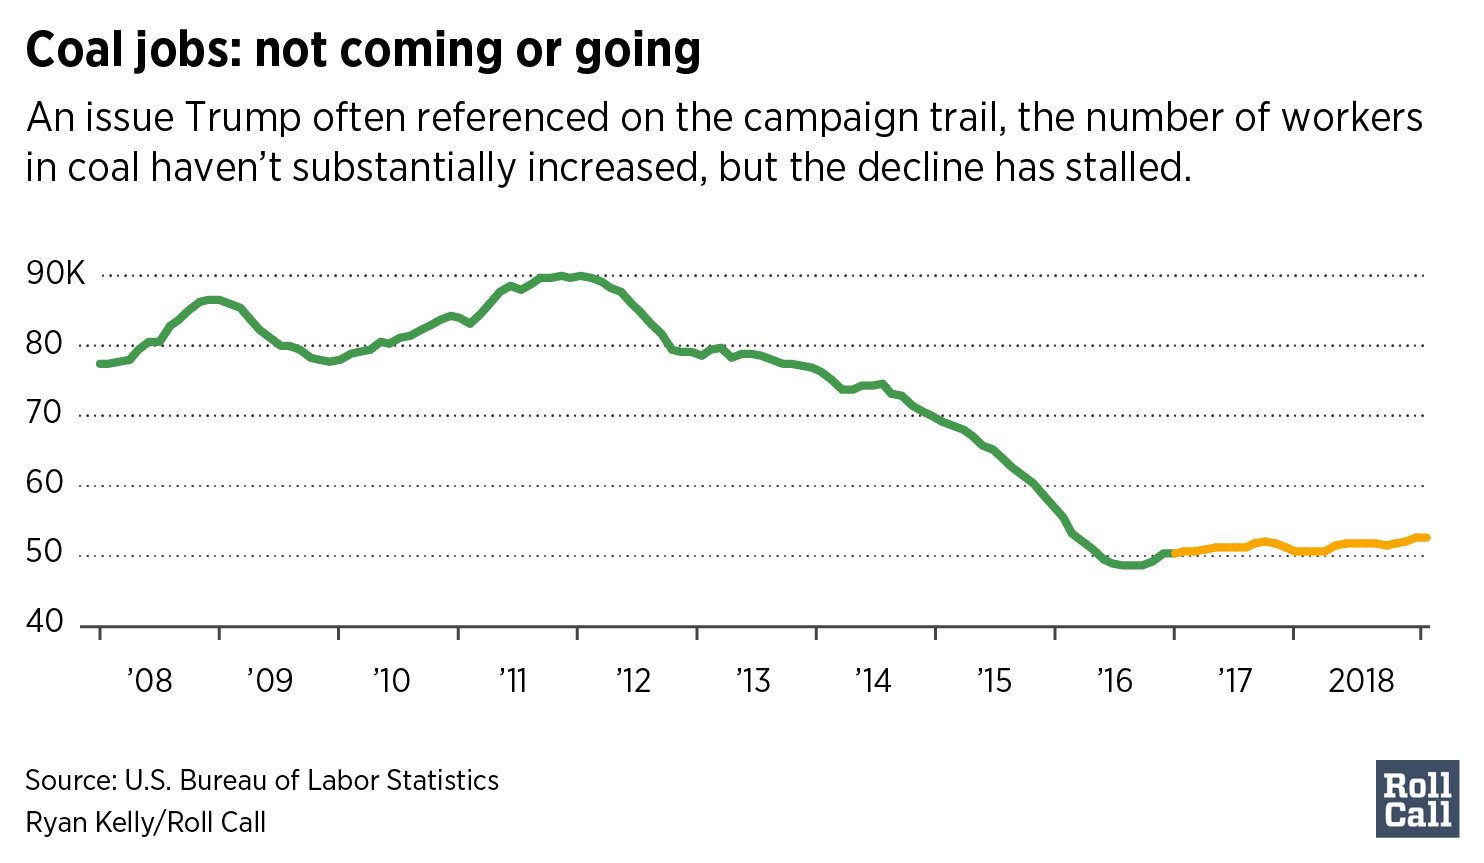 Coal jobs: not coming or going